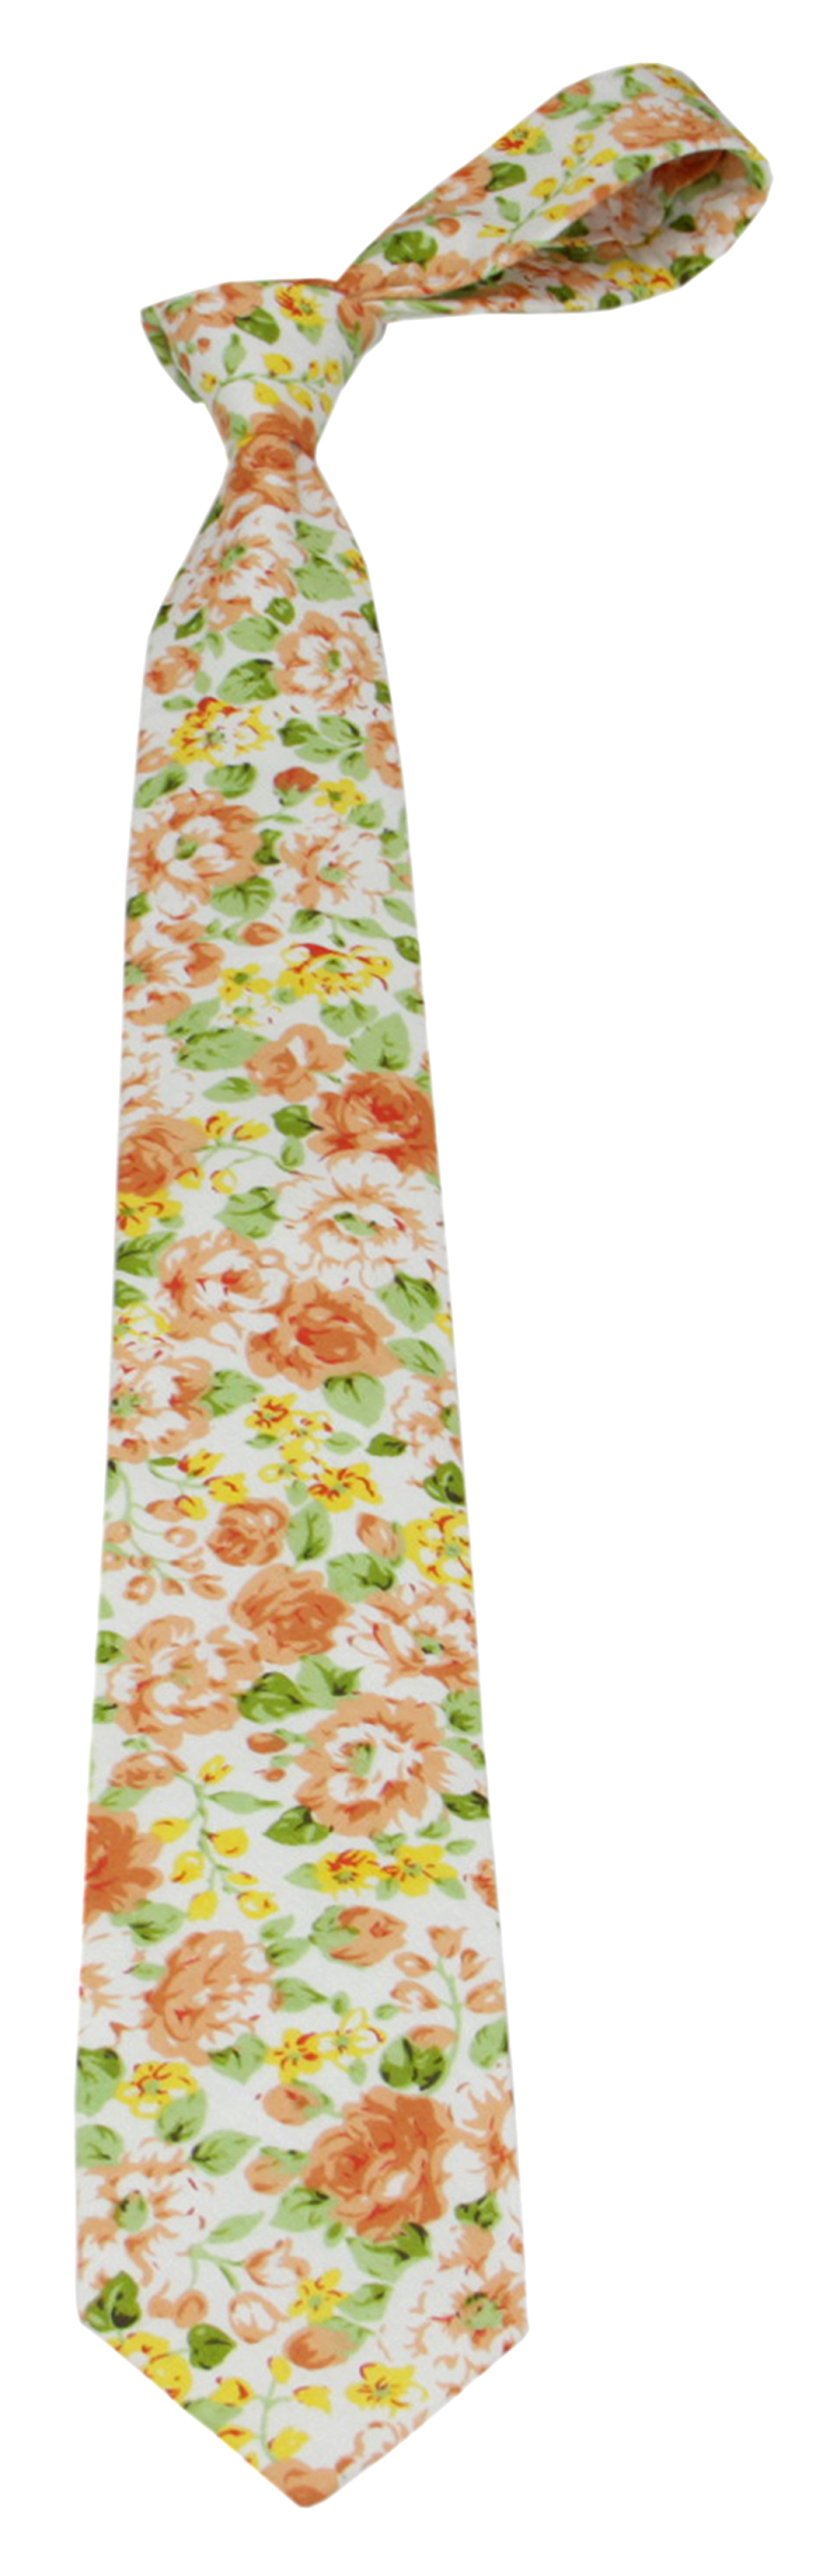 Mens Charm 100% Cotton Floral Print Tie - Various Colors (Salmon with Coral and Lime Green)